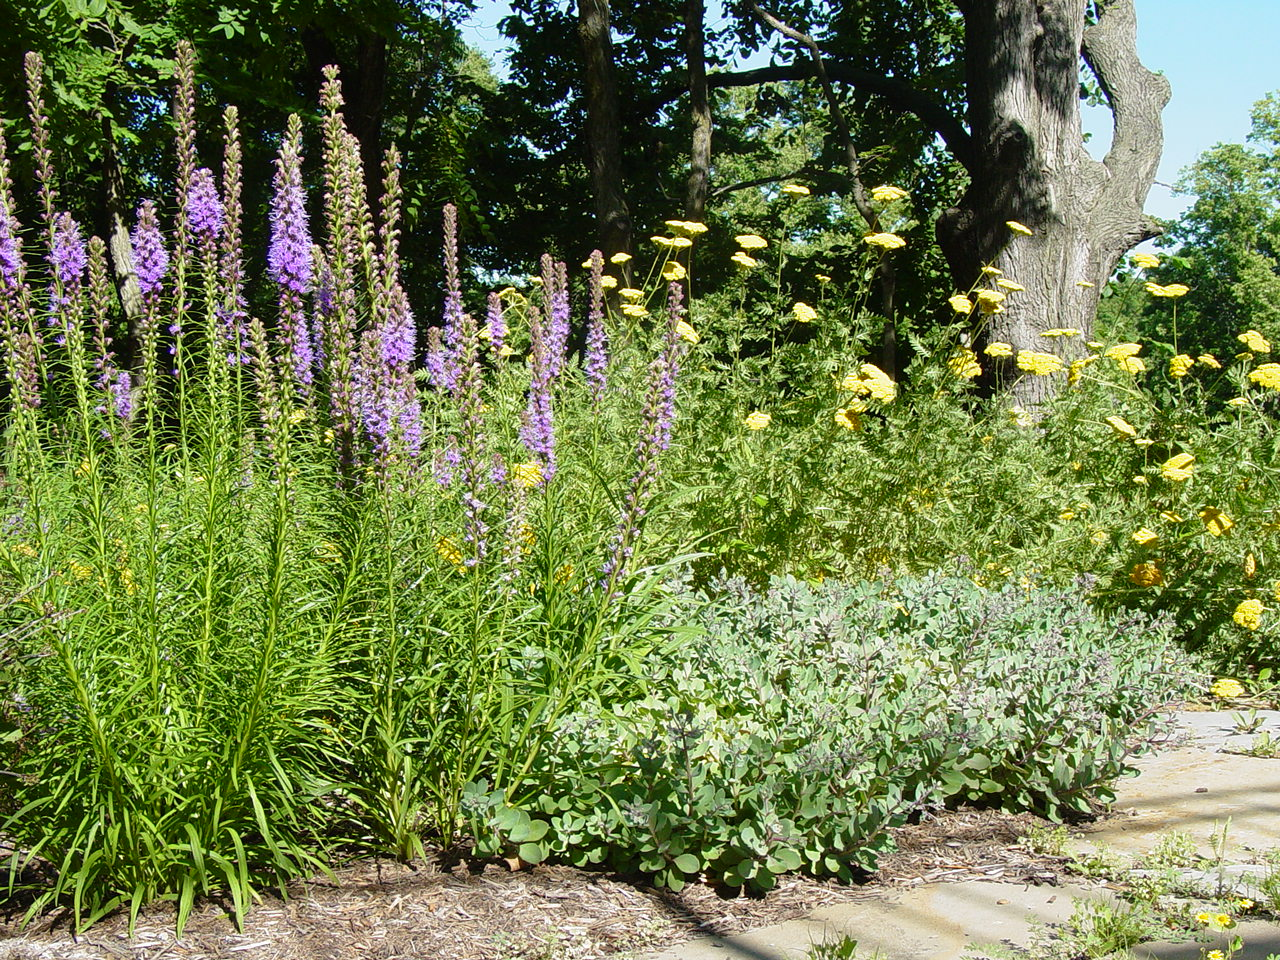 Corners of a yard can become excellent birding spots by including native plants.